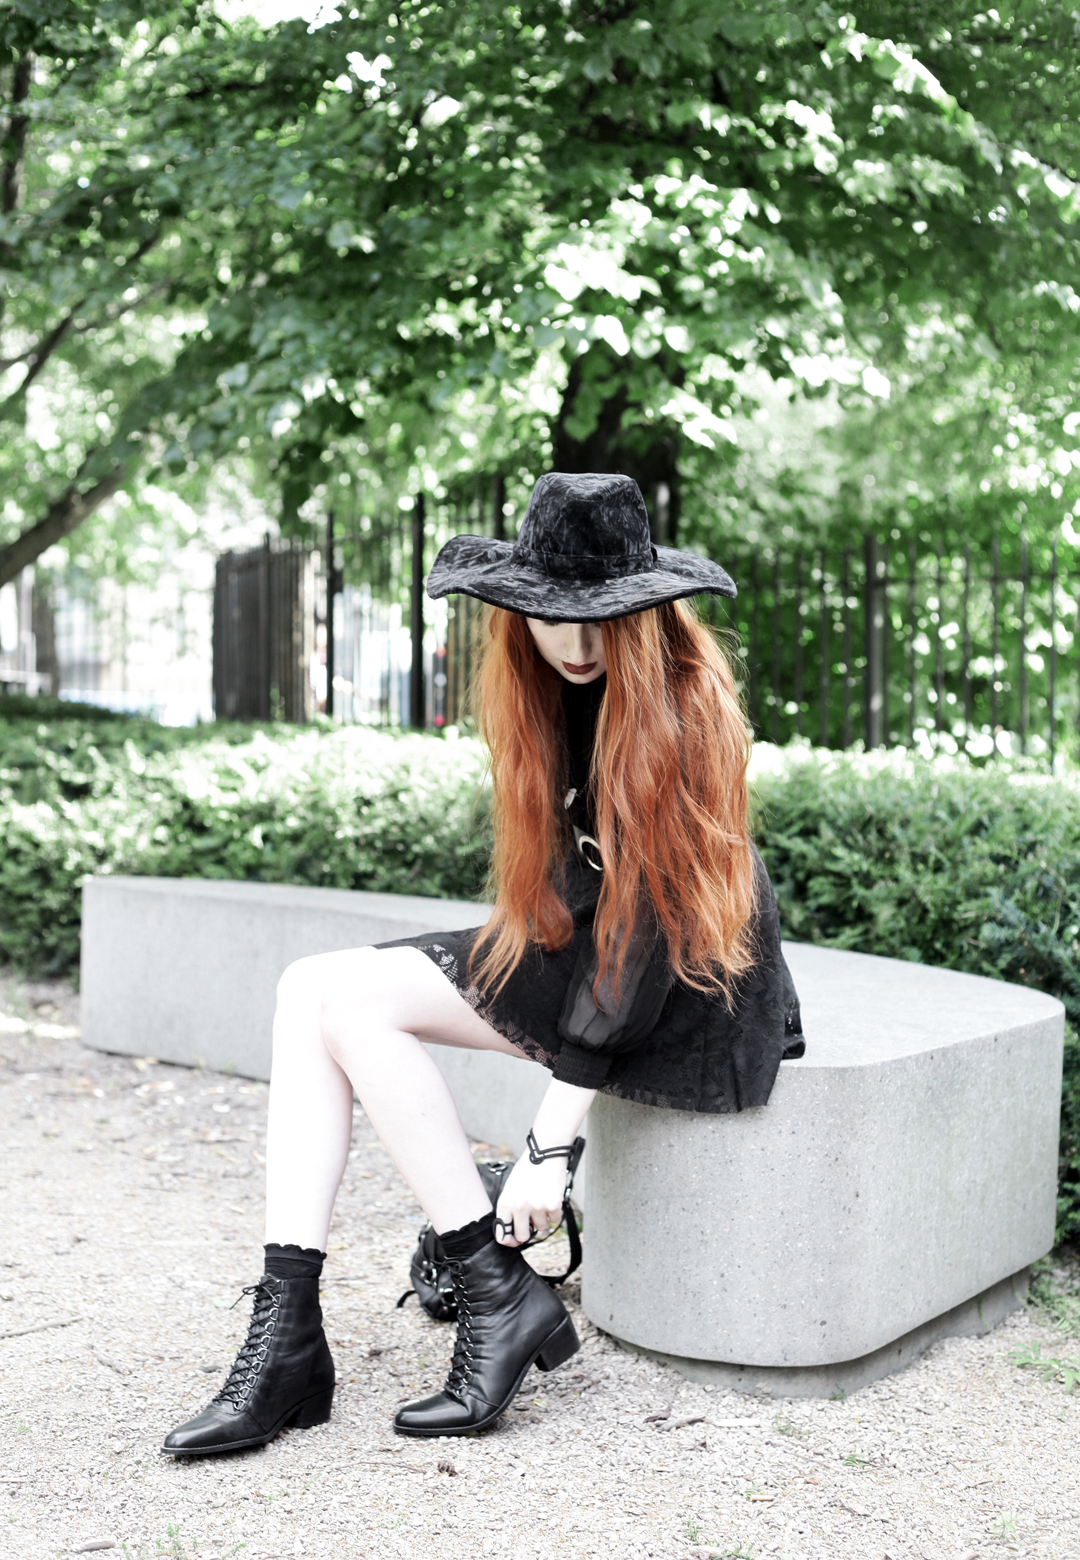 Olivia Emily wears Asos Sheer Shirt, Black Milk Black Lace Skater Dress, Killstar Velvet Witch Brim Hat, Zana Bayne Cincher Waist Belt, Rogue and Wolf Matte Black Bracelet & Rings, and Asos Ariana Lace Up Boots